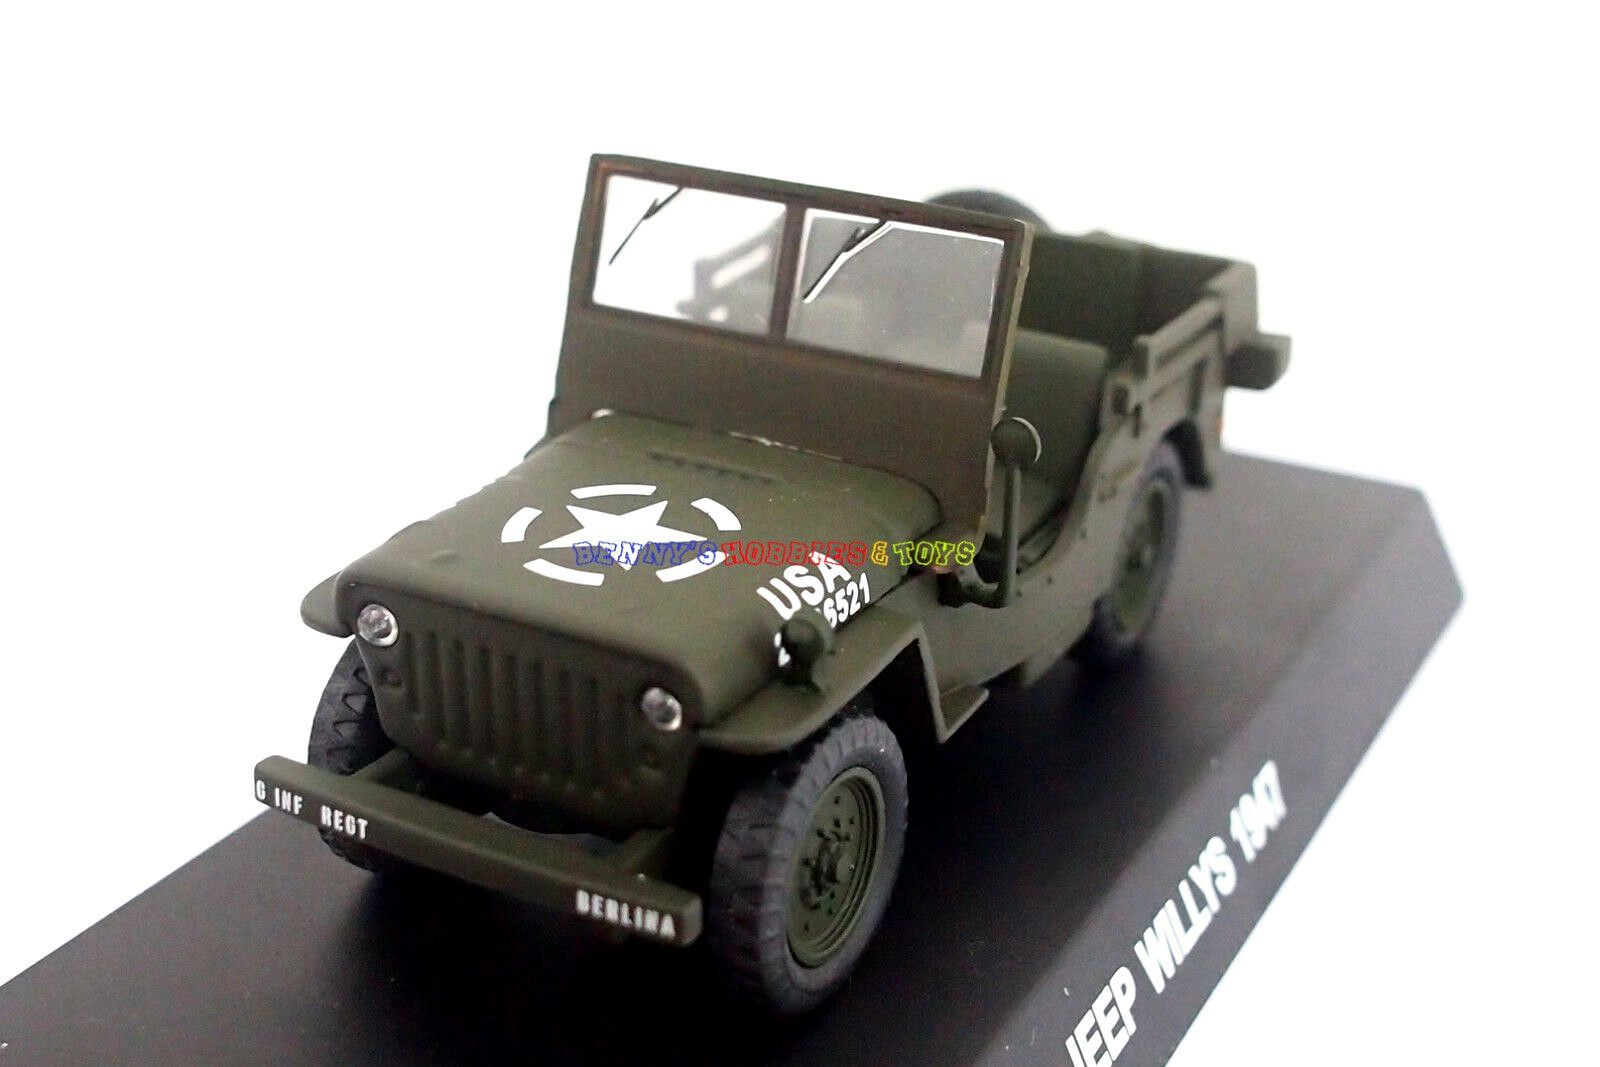 New New New 1/43 Diecast Tank US Willis Jeep WWII Vehicle Military Model Toy Soldiers 9dd23c